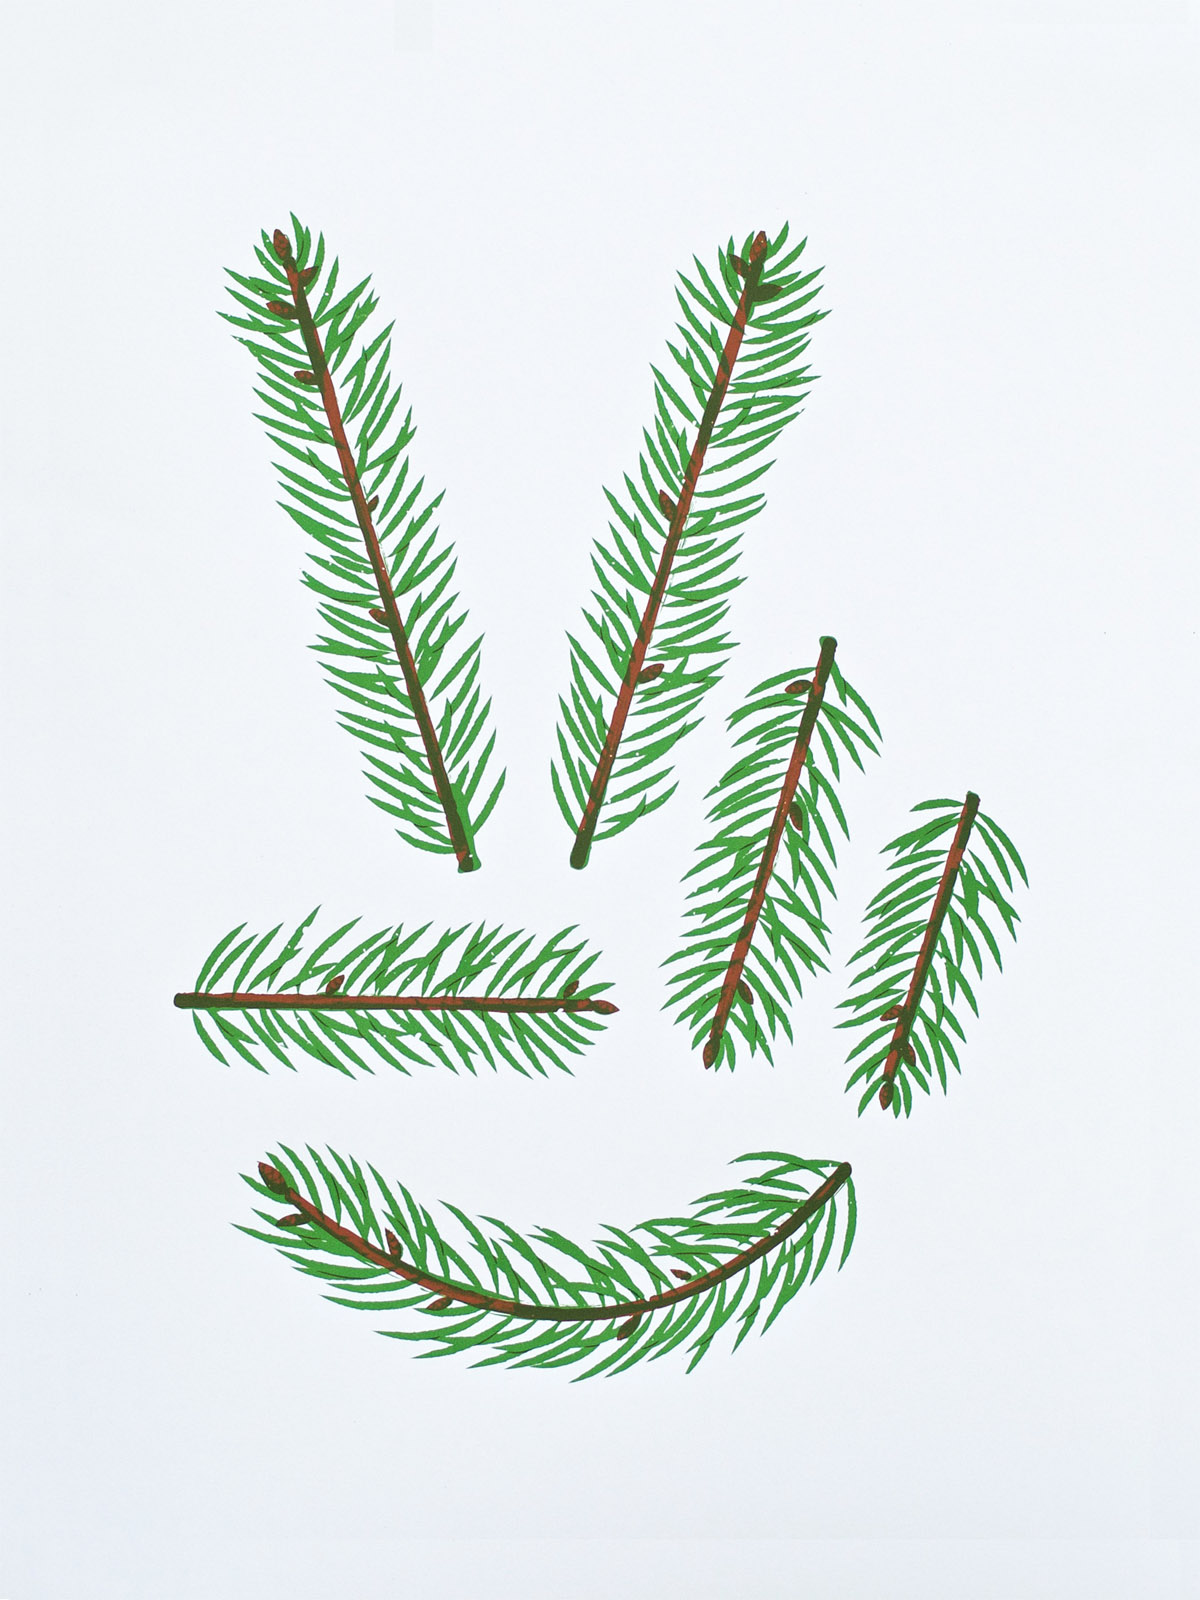 Peace Pine poster by Joshua Gille